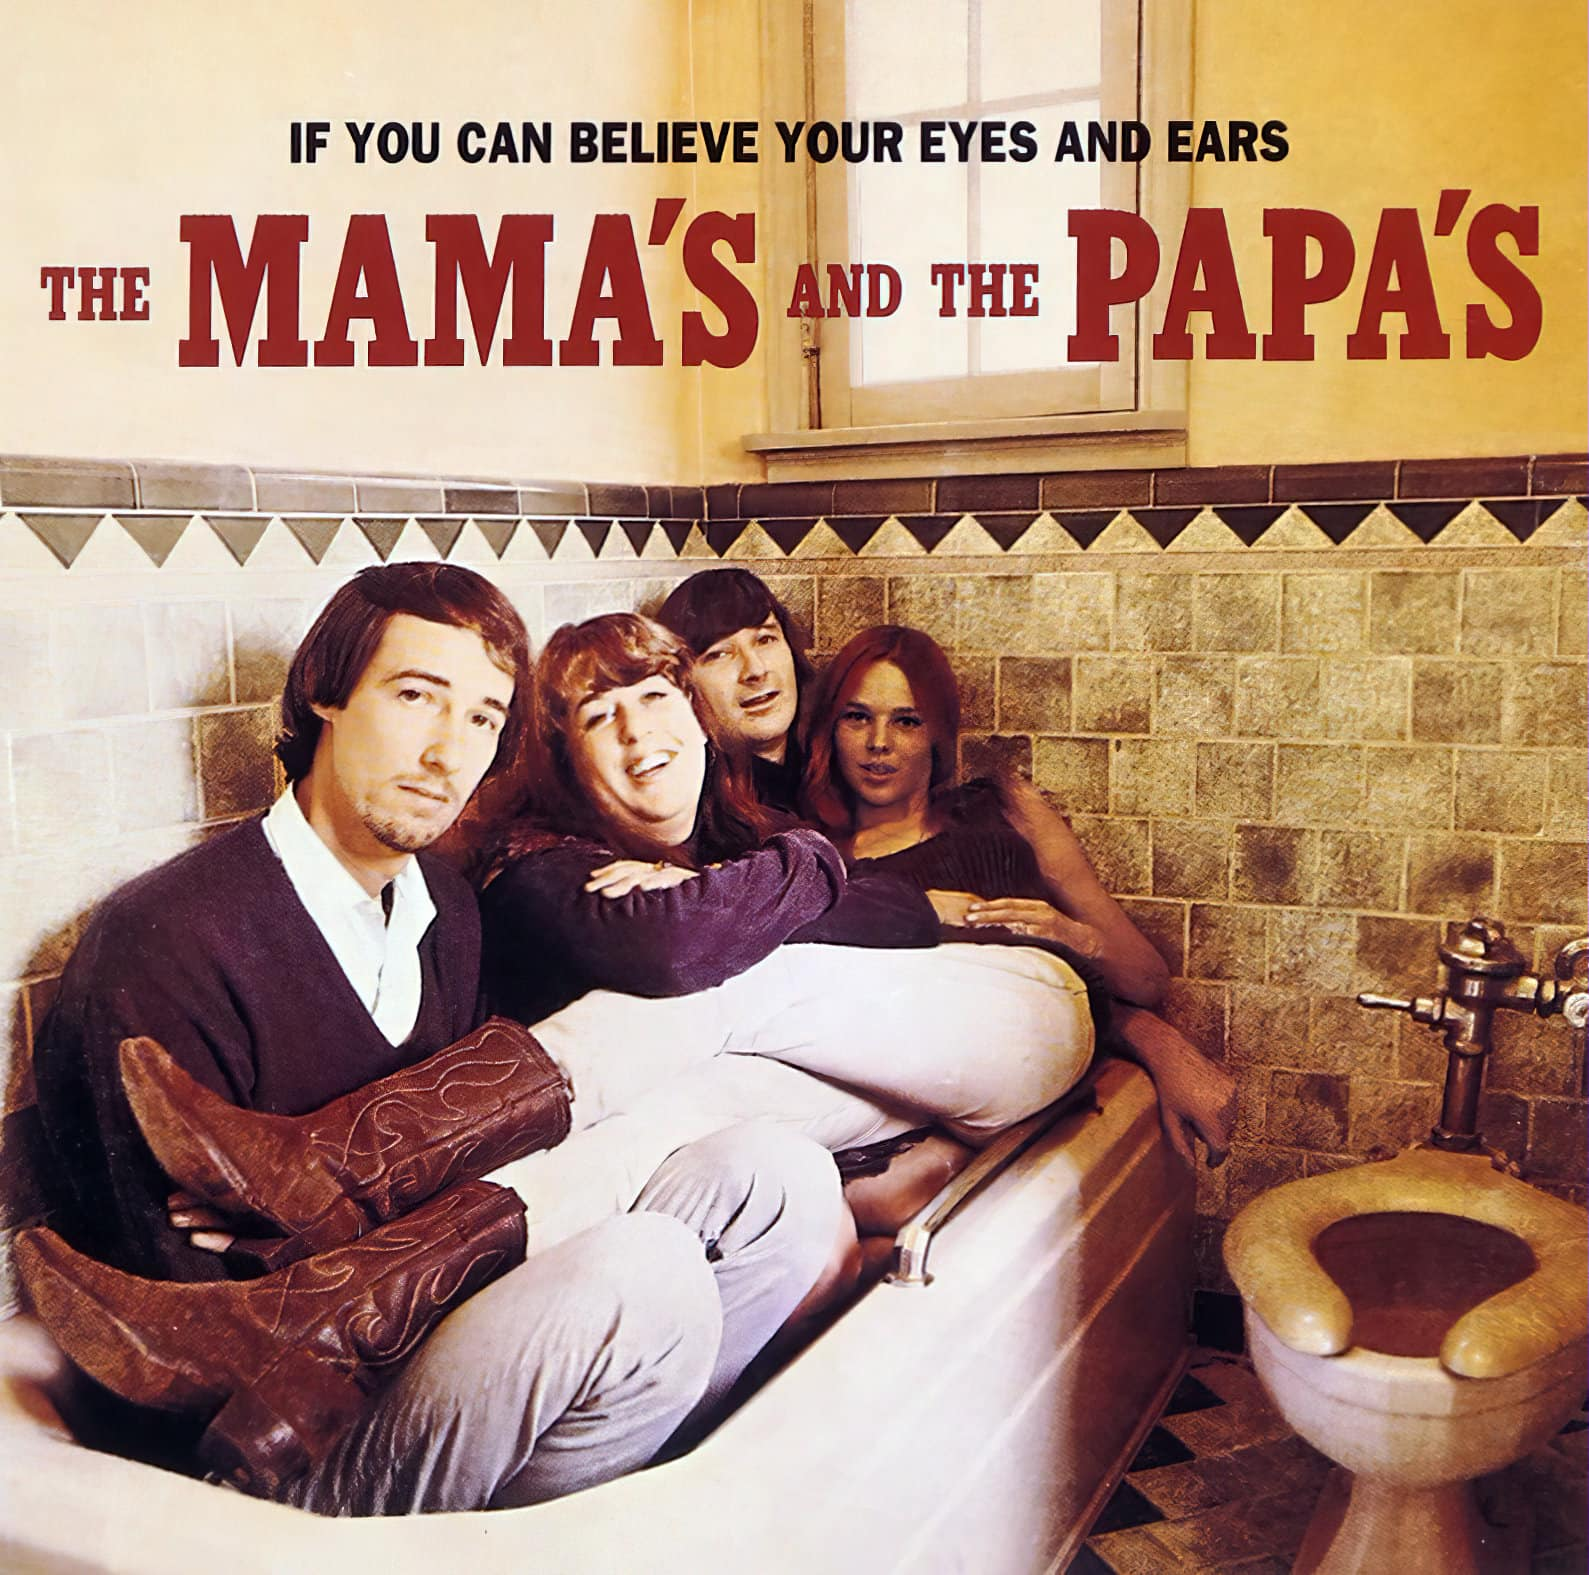 Mamas and Papas album - If You Can Believe Your Eyes and Ears